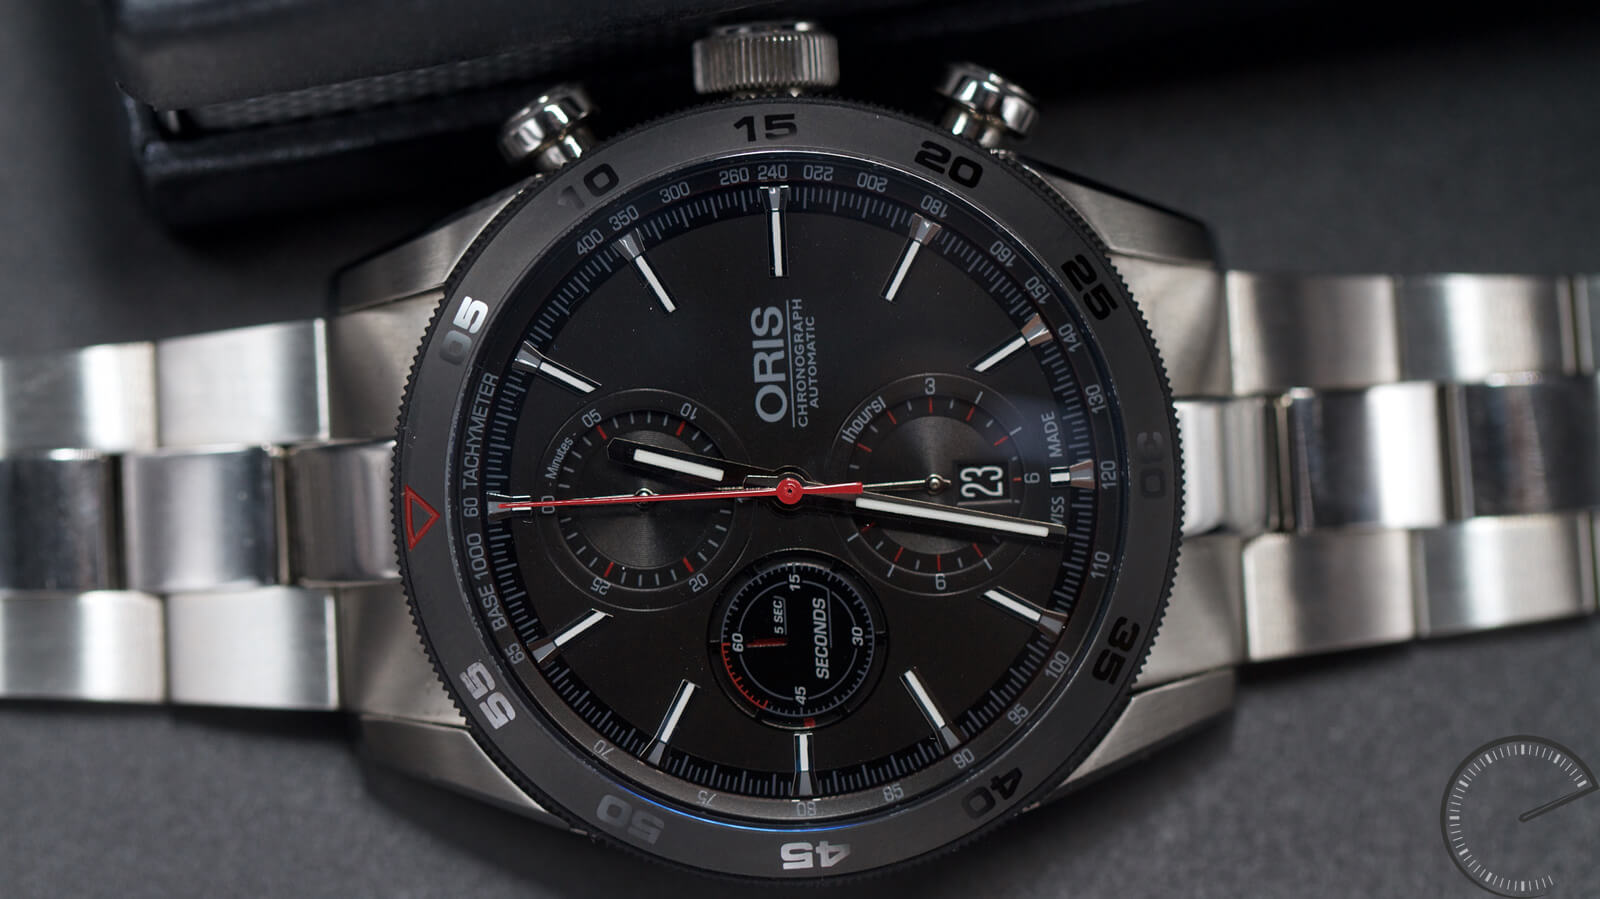 Oris Artix GT Chronograph - tri-compax chronograph with metal bracelet and Sellita SW500 movement